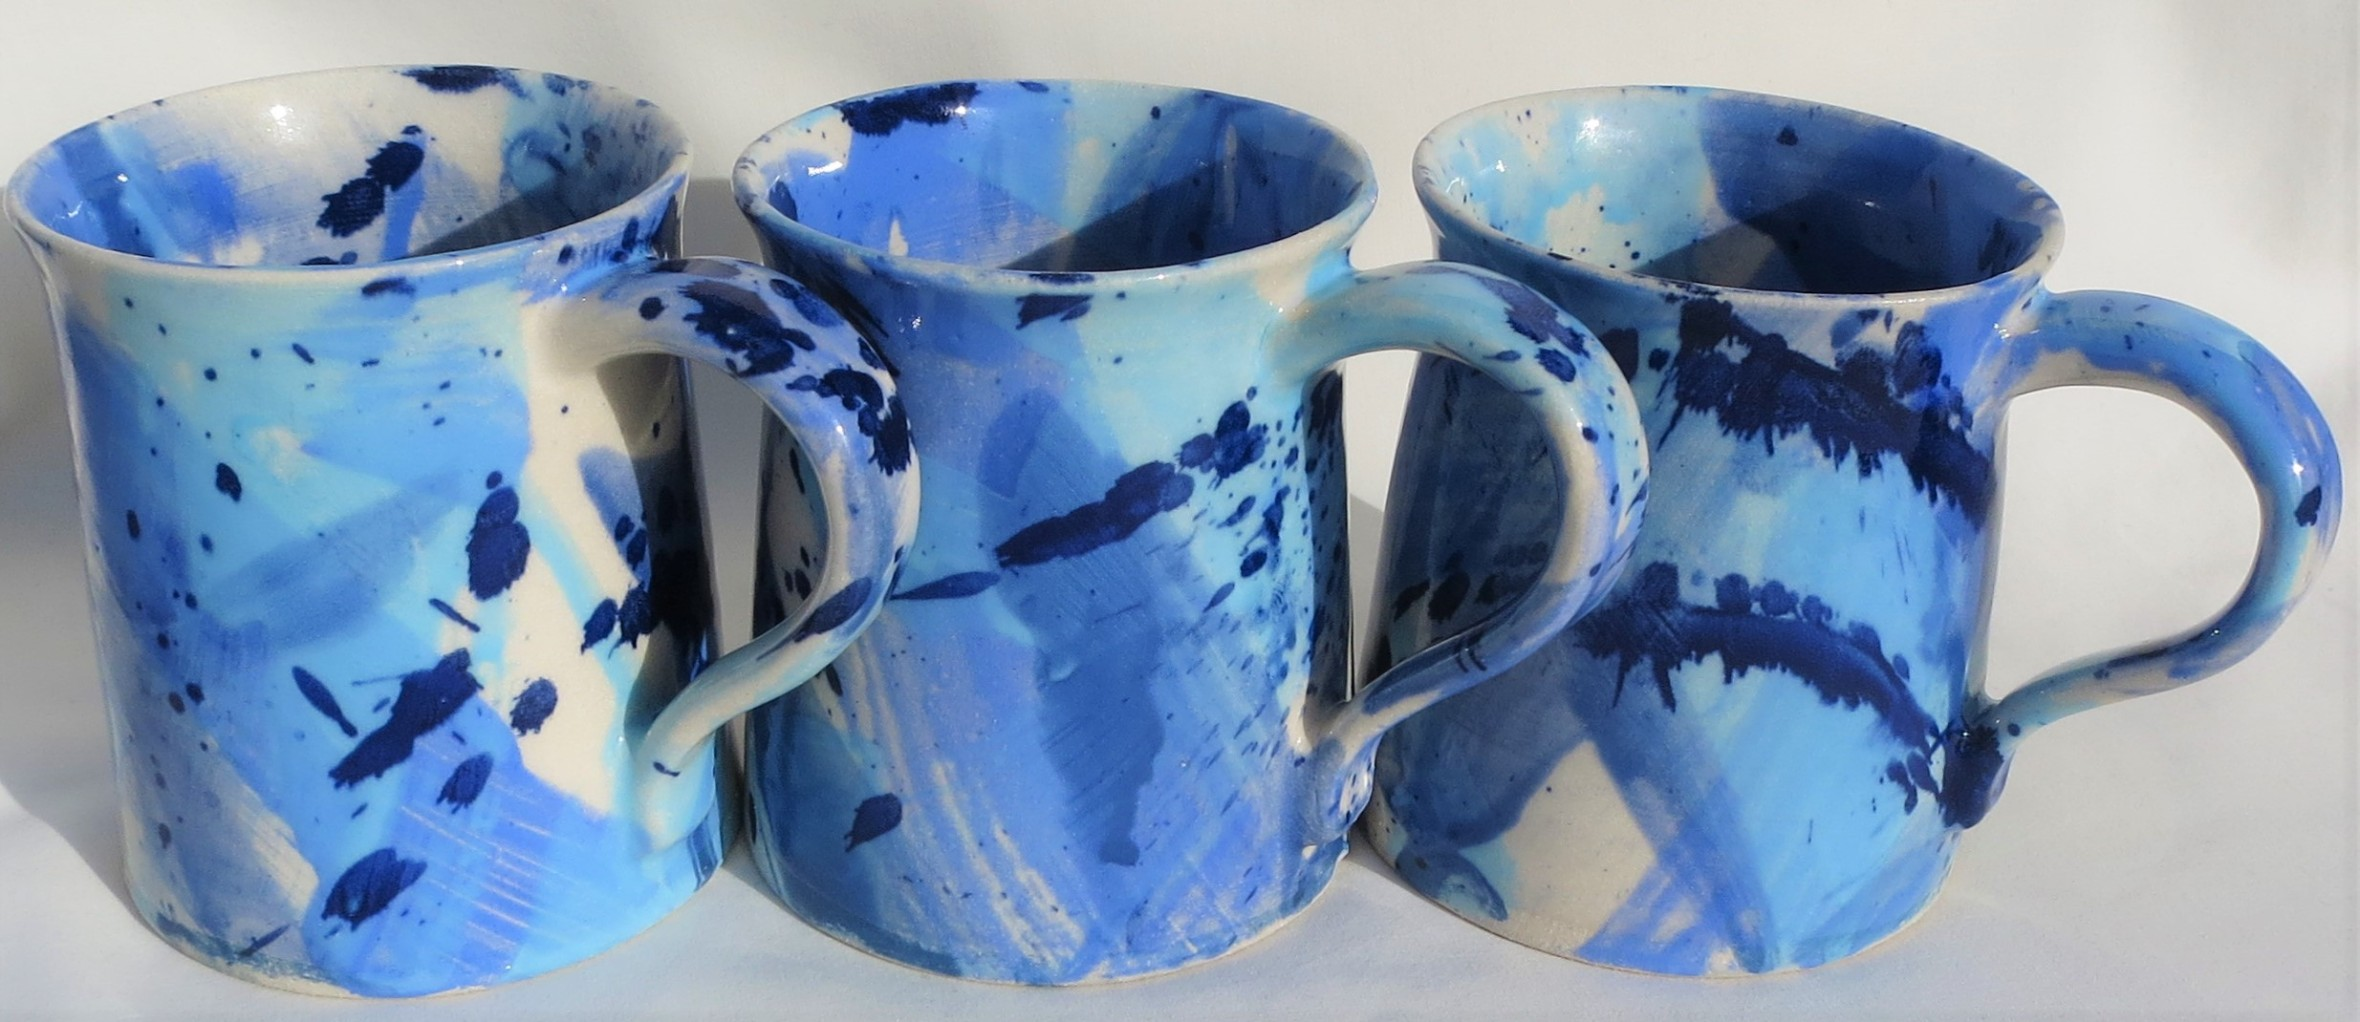 Splash Blue Mugs x 3 (2)